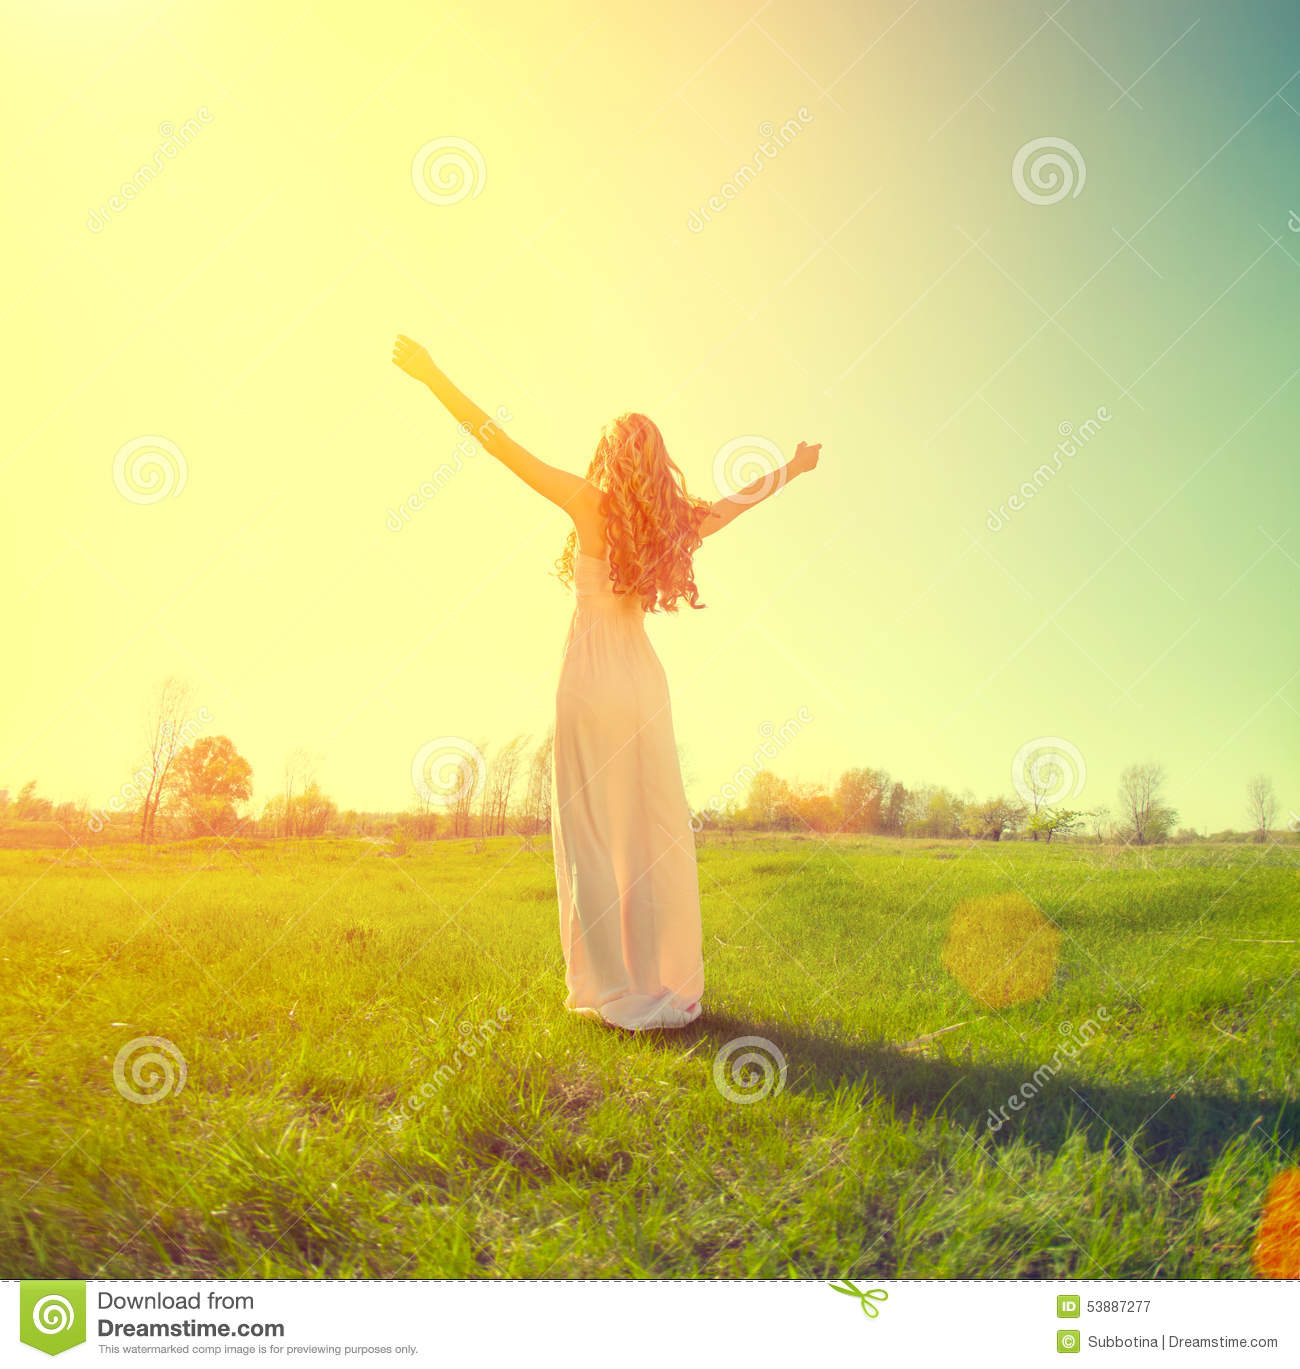 Woman raising hands in sunlight rays